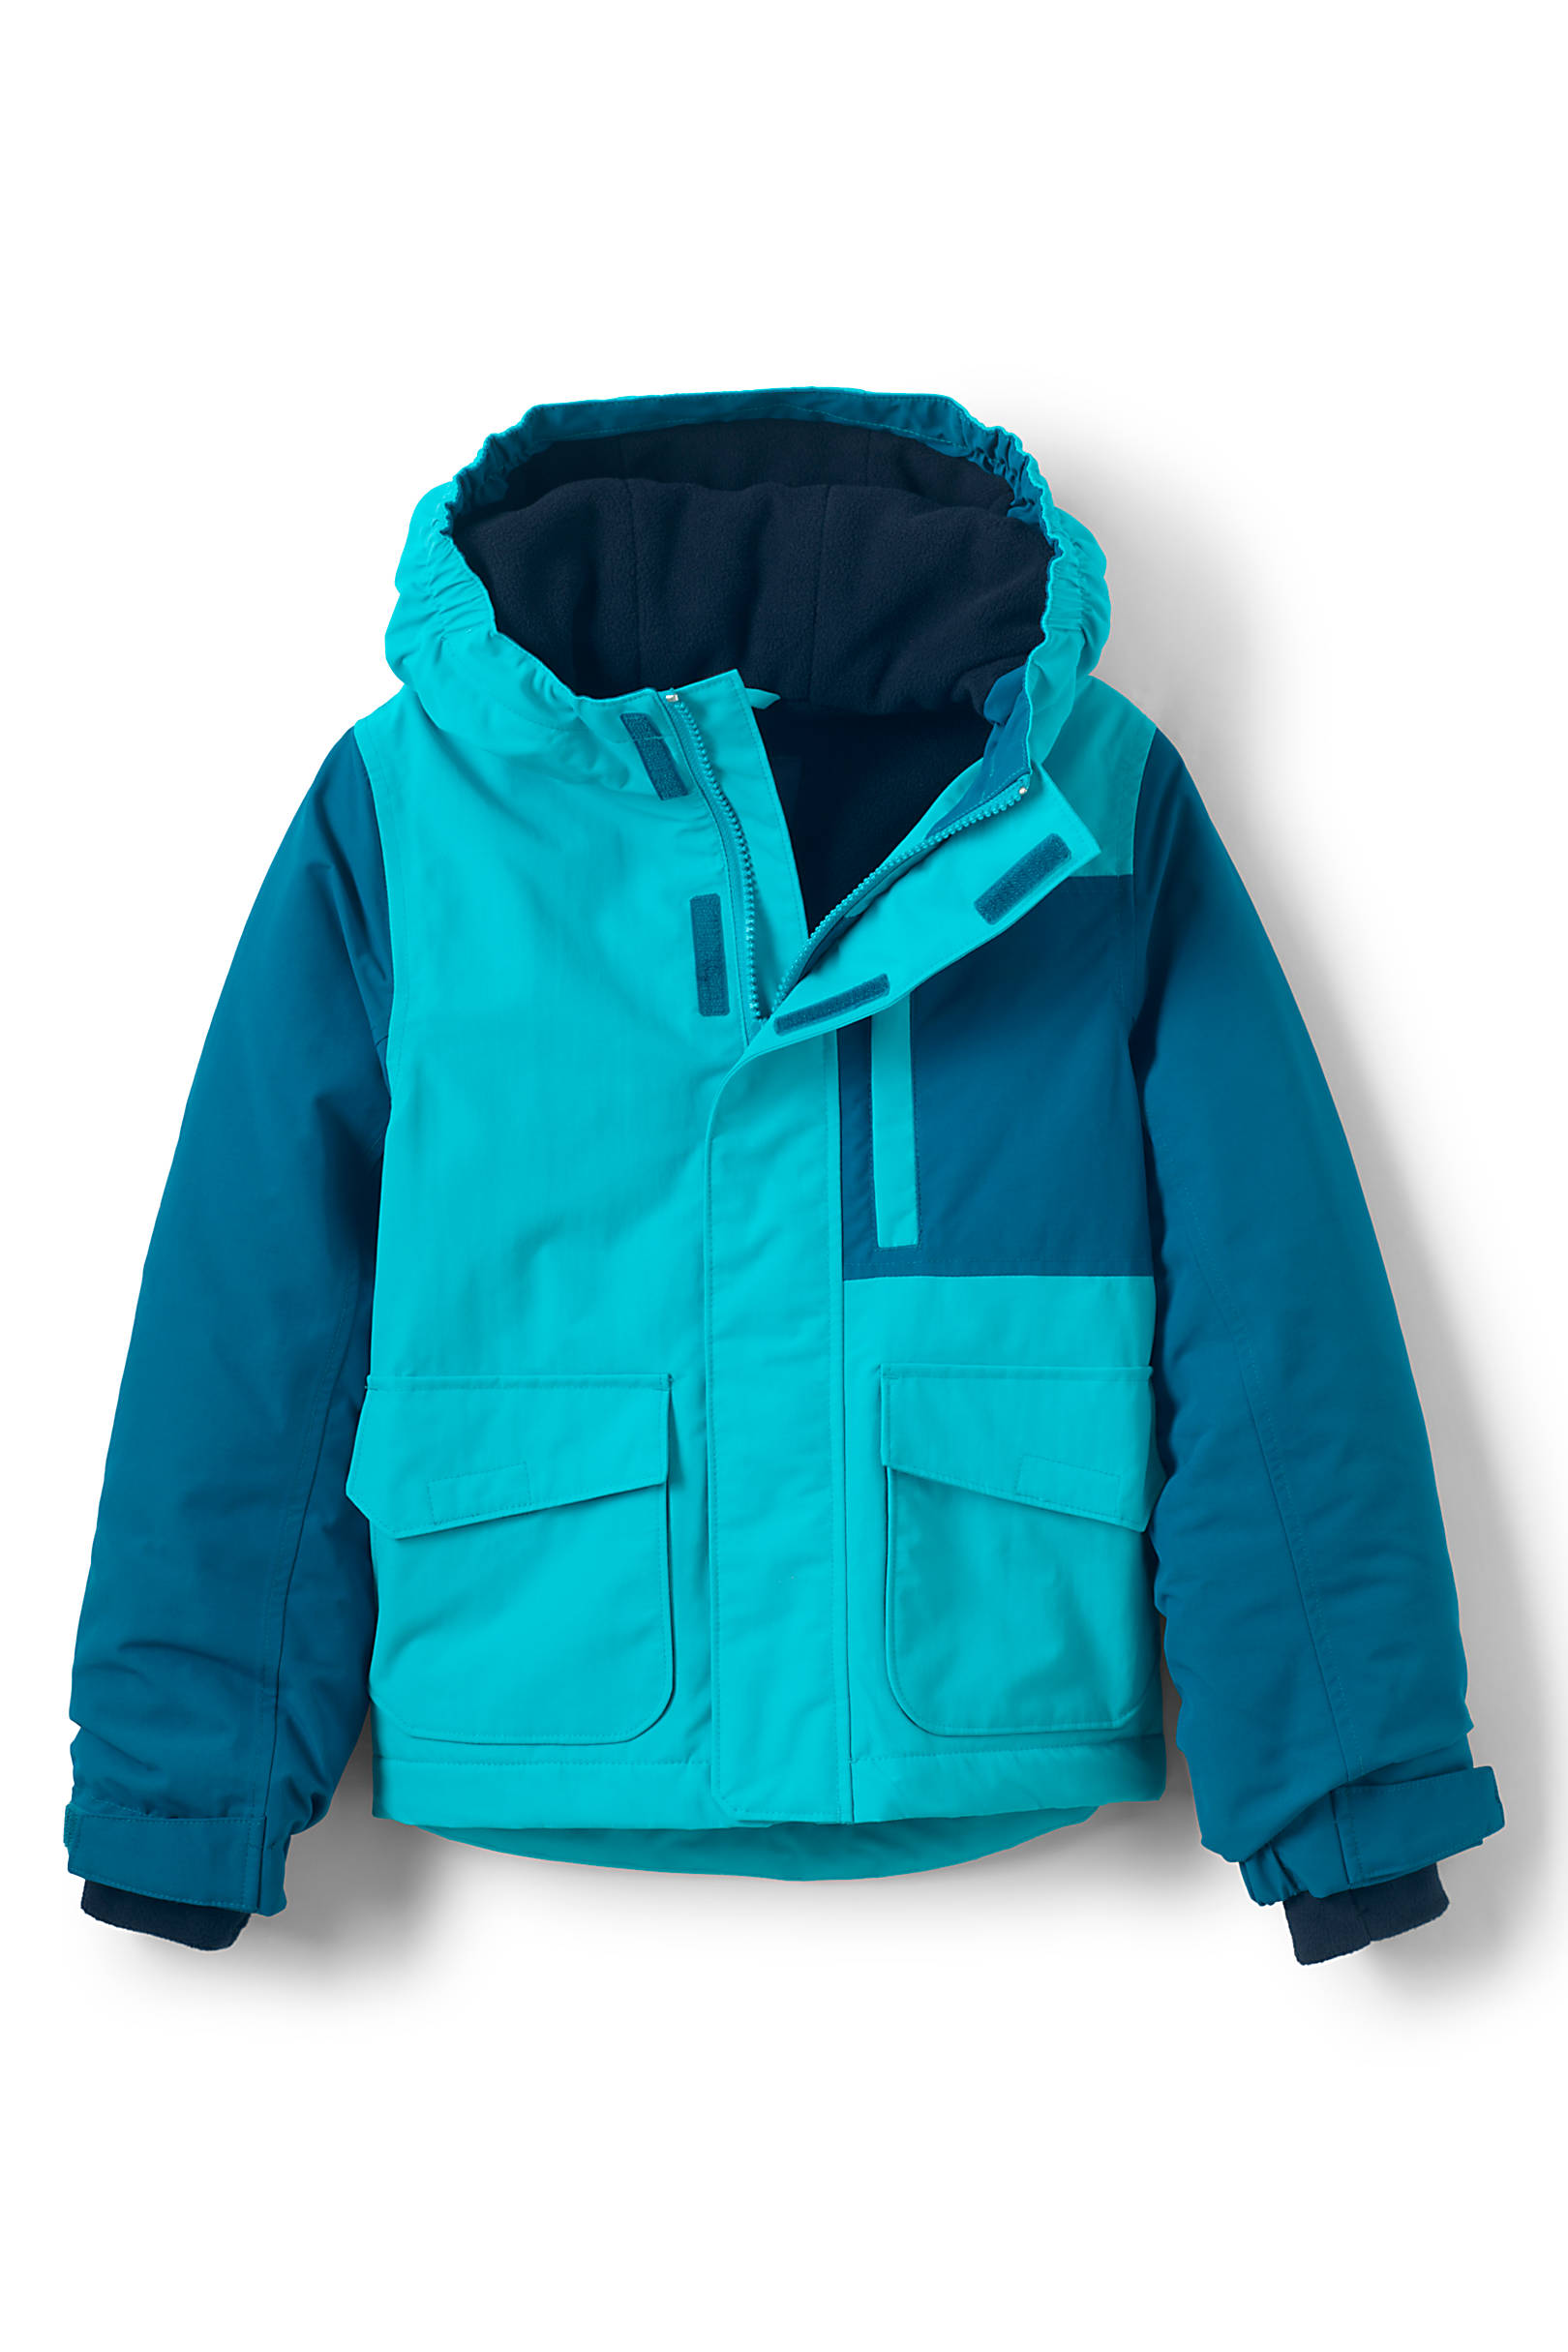 Lands' End Squall Waterproof Insulated Kids' Jacket